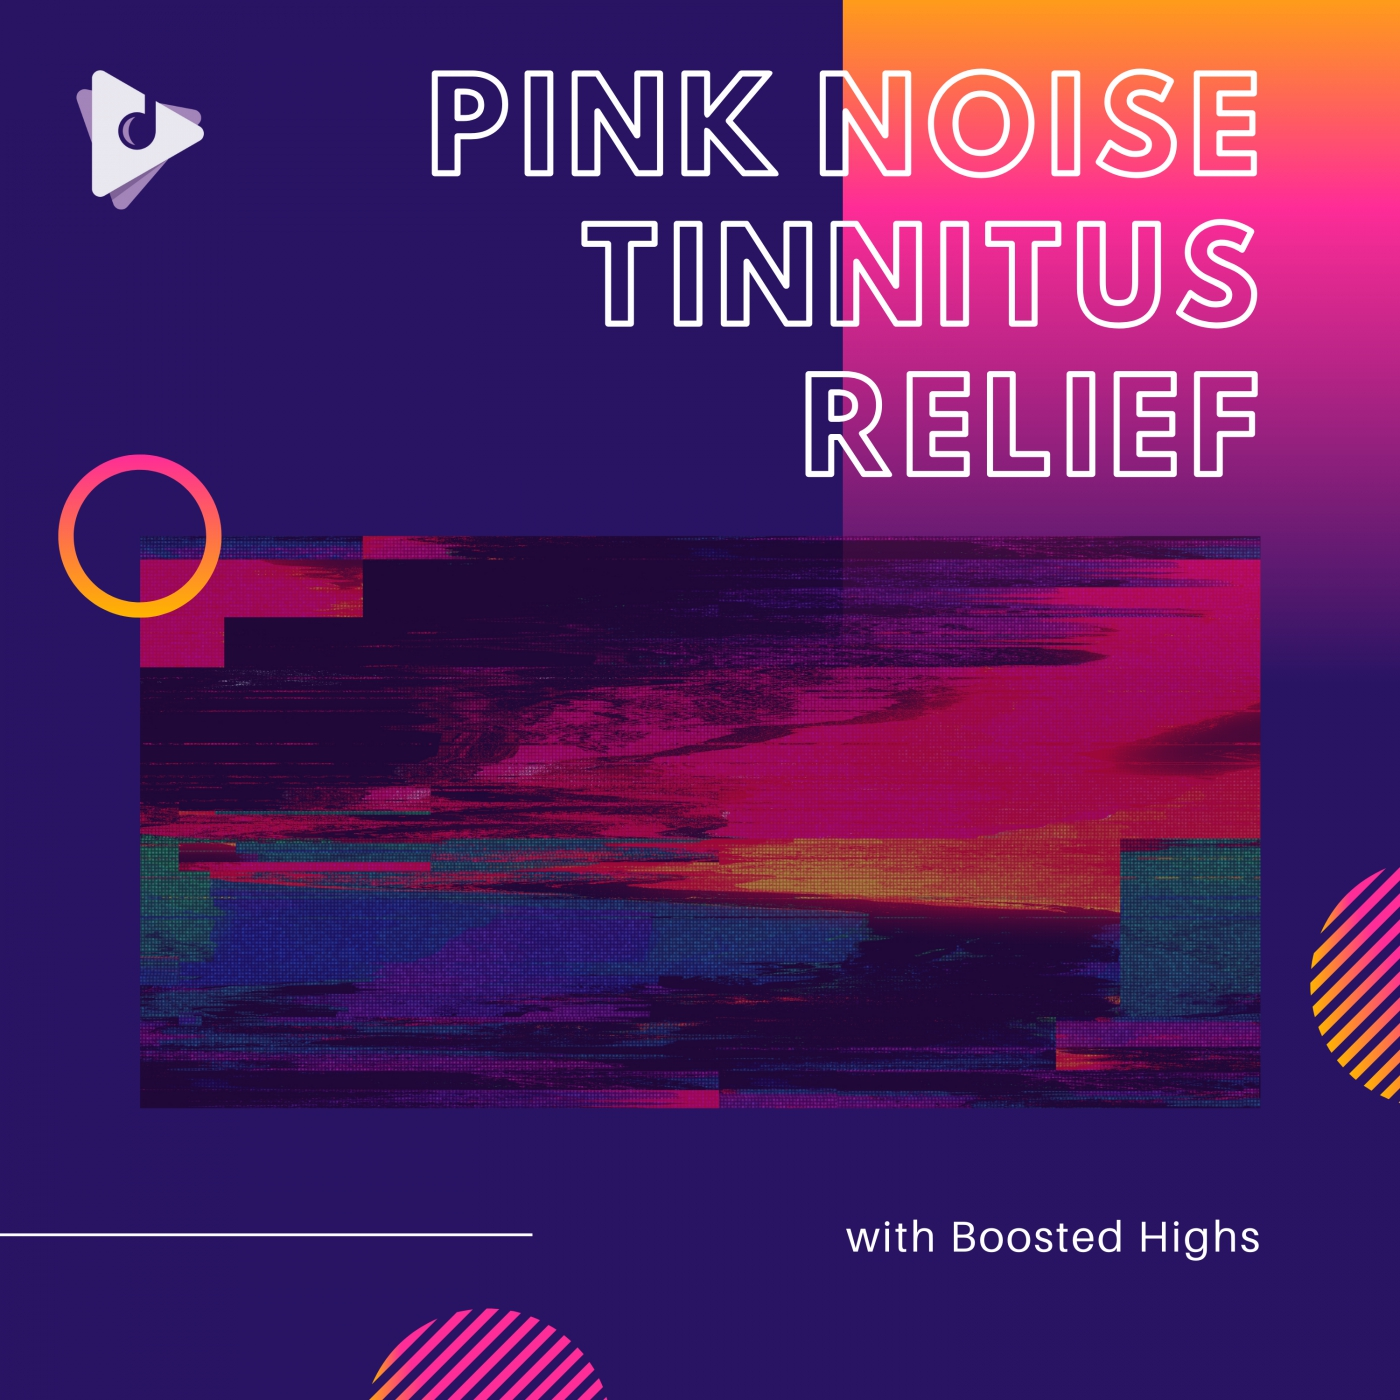 Pink Noise Tinnitus Relief with Boosted Highs